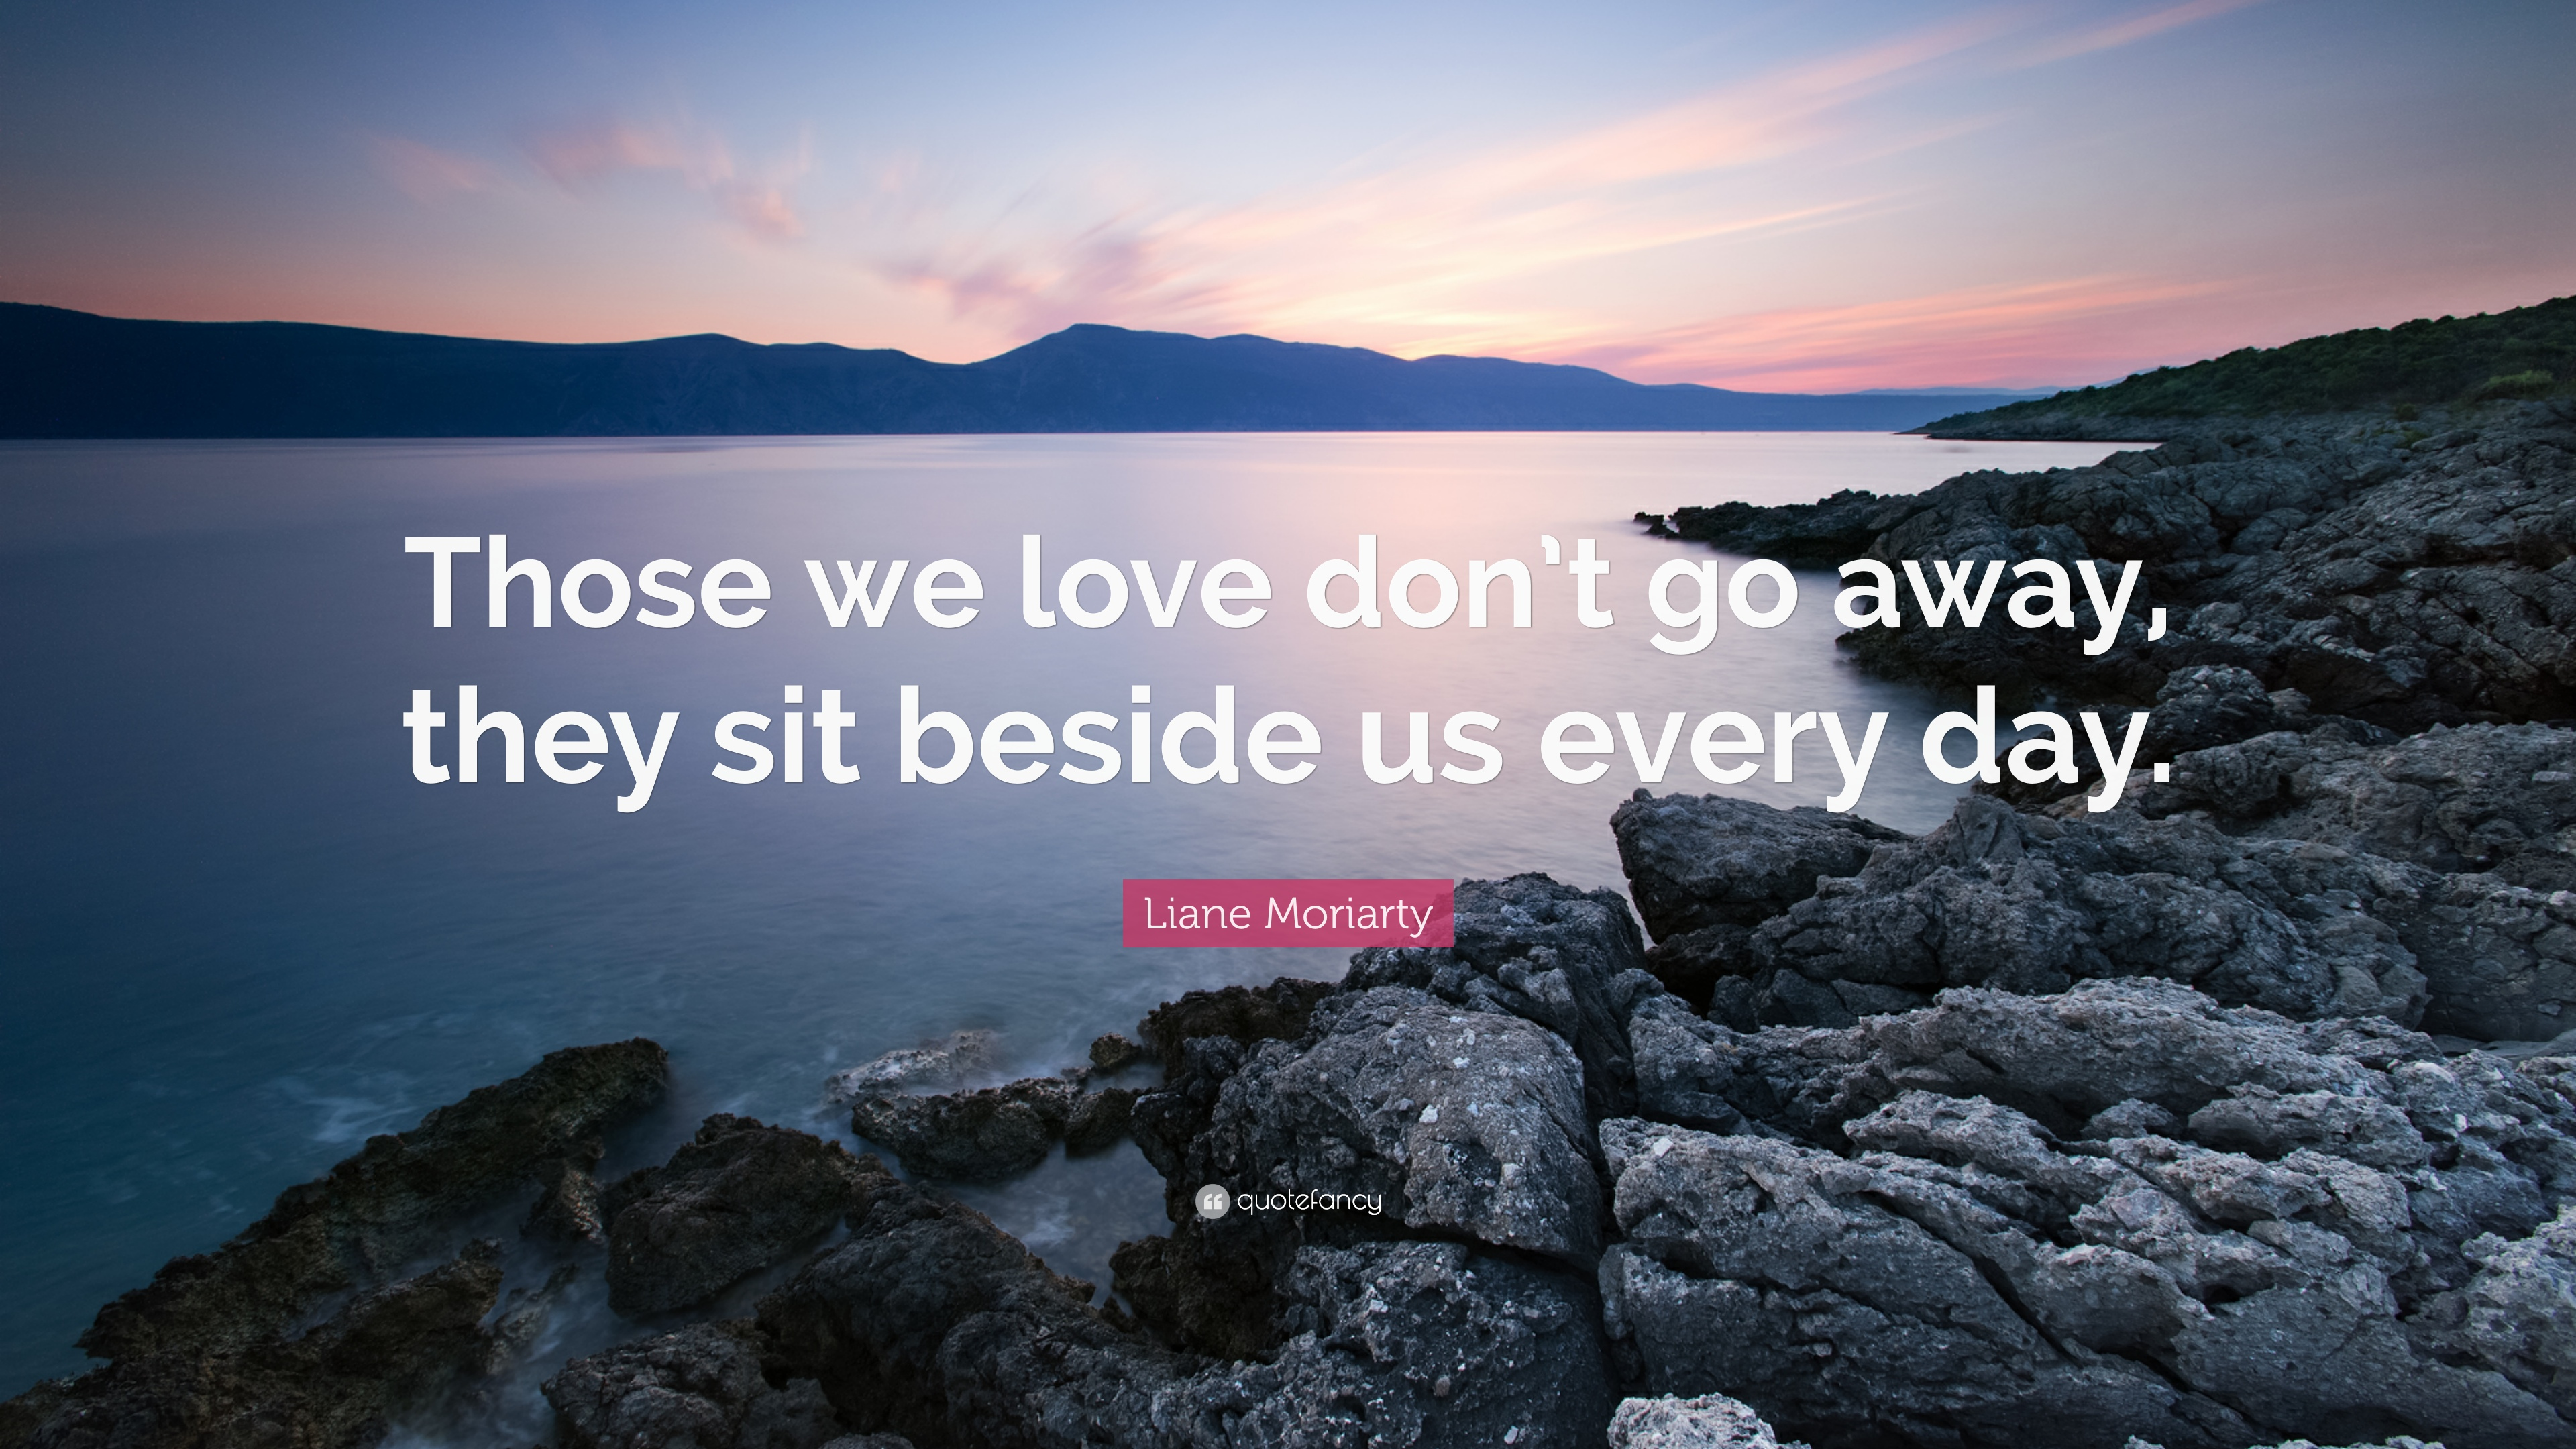 Liane Moriarty Quote Those We Love Dont Go Away They Sit Beside